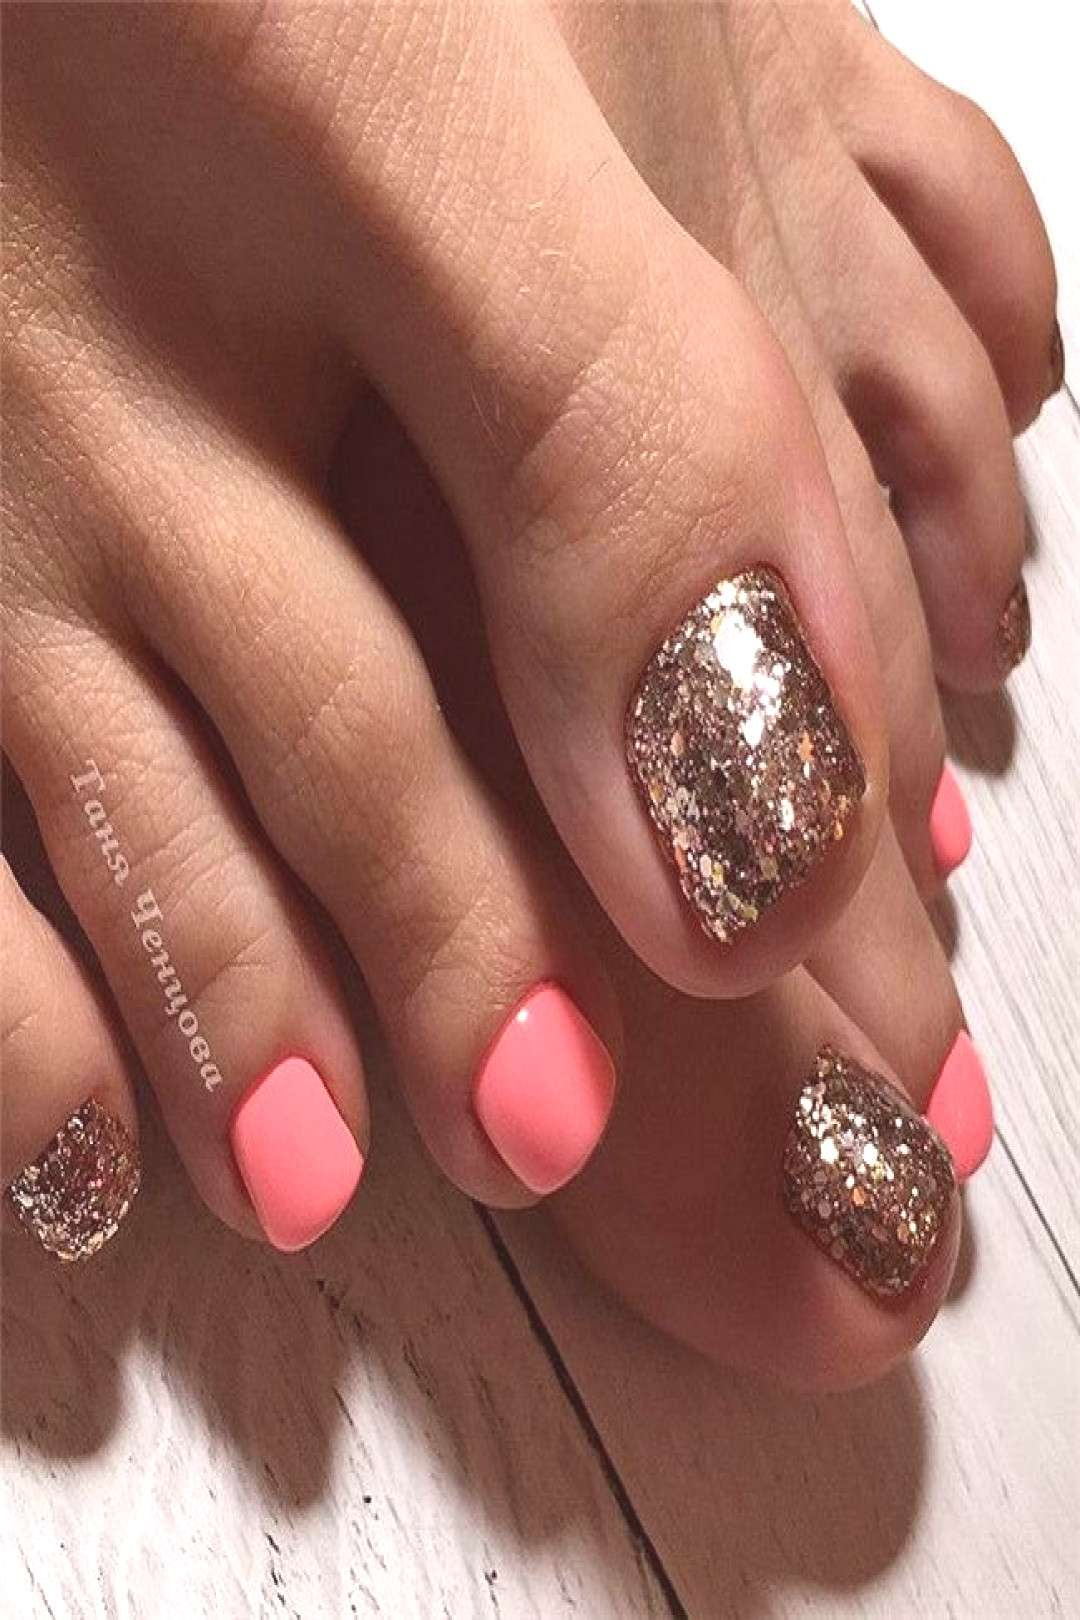 36 The Trend Toe Art Nail Designs In Summer Summer is coming, which means we can wear sandals or f